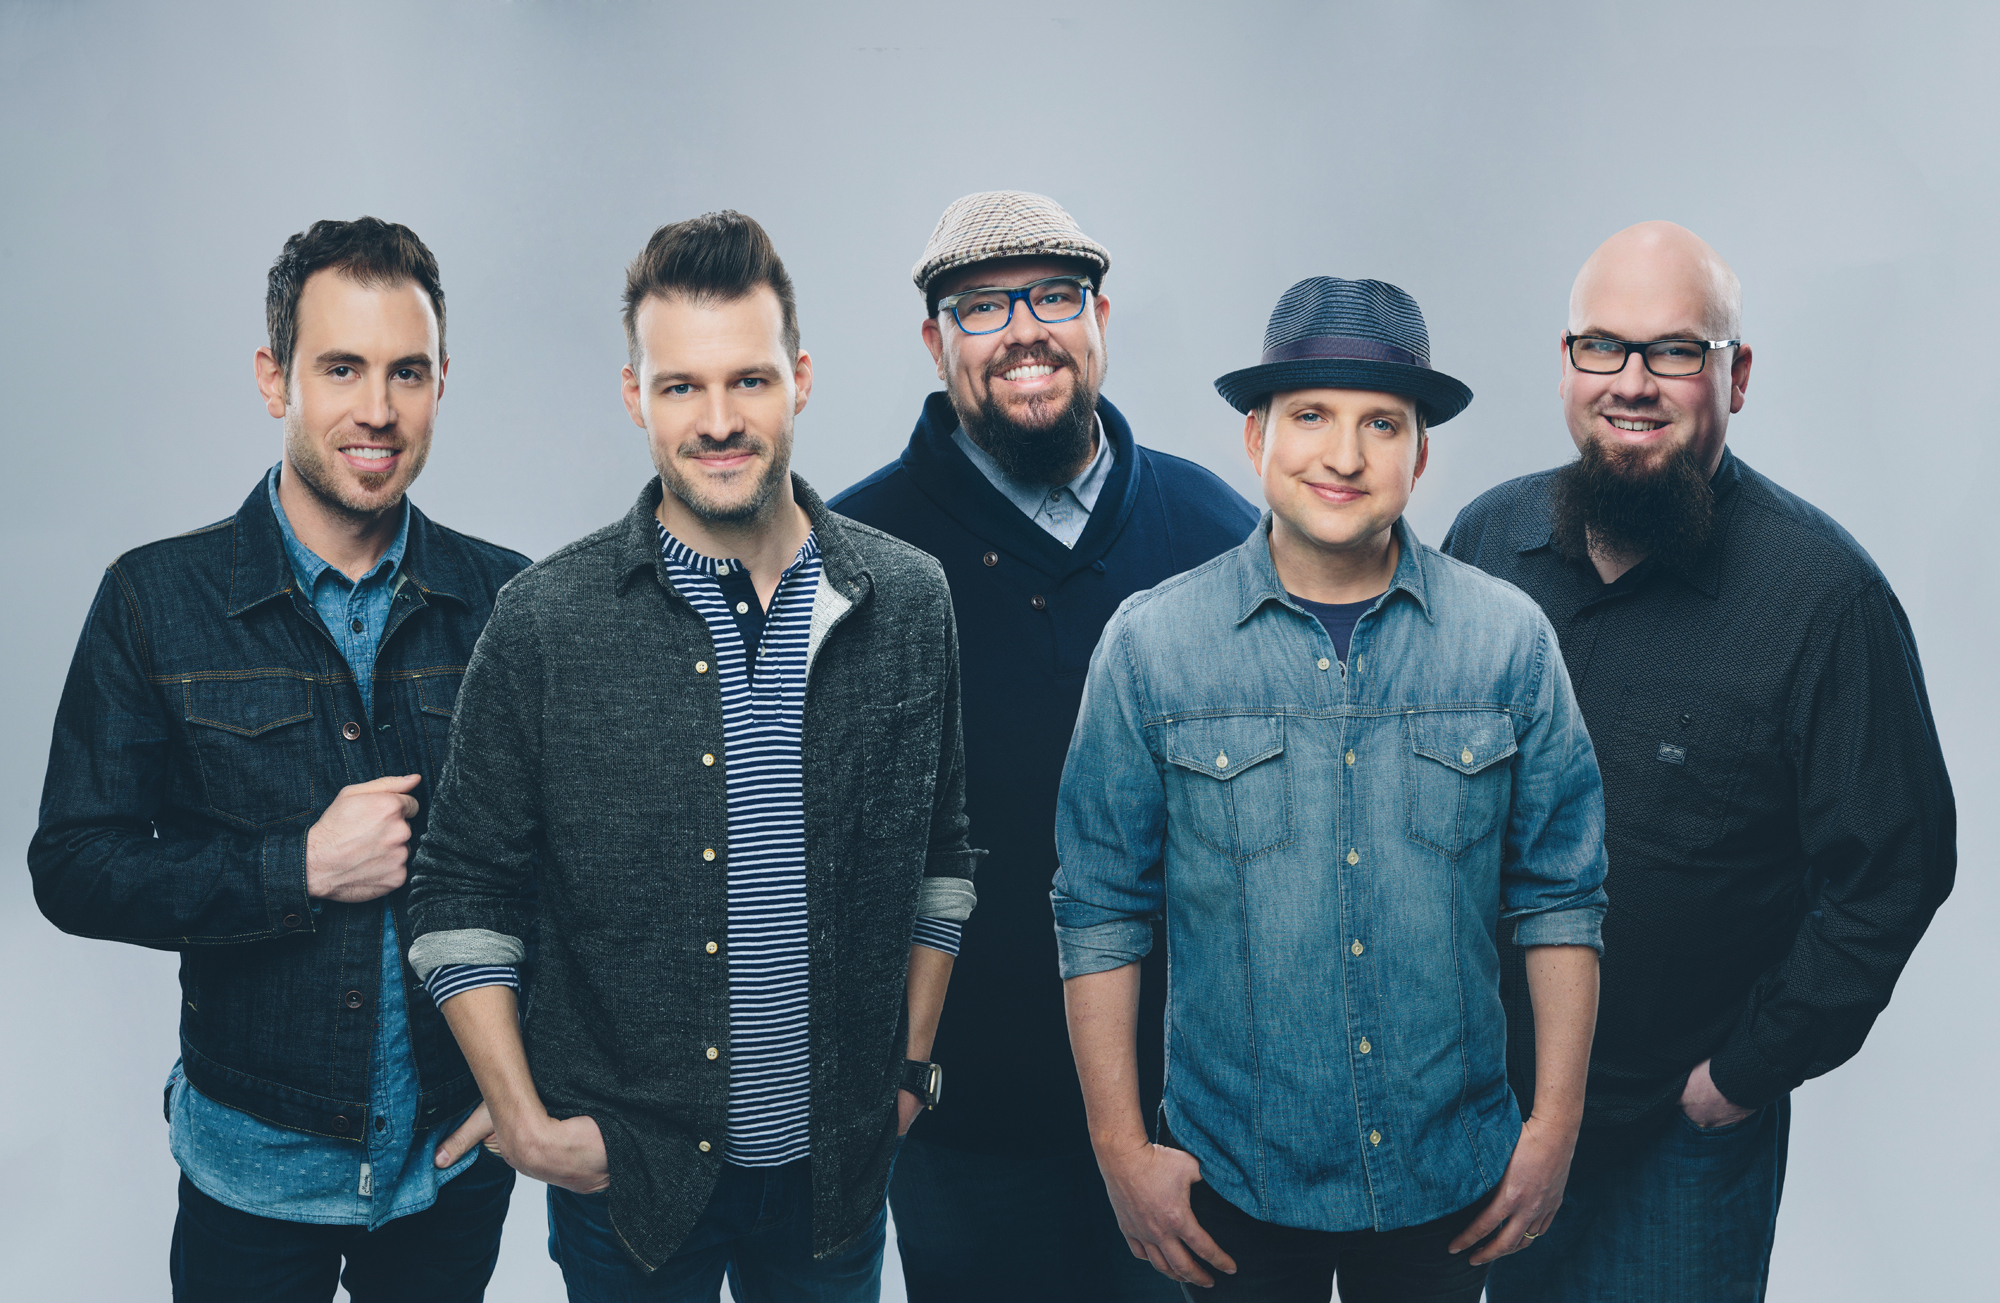 8 Must Hear Songs By Big Daddy Weave Freeccm Com